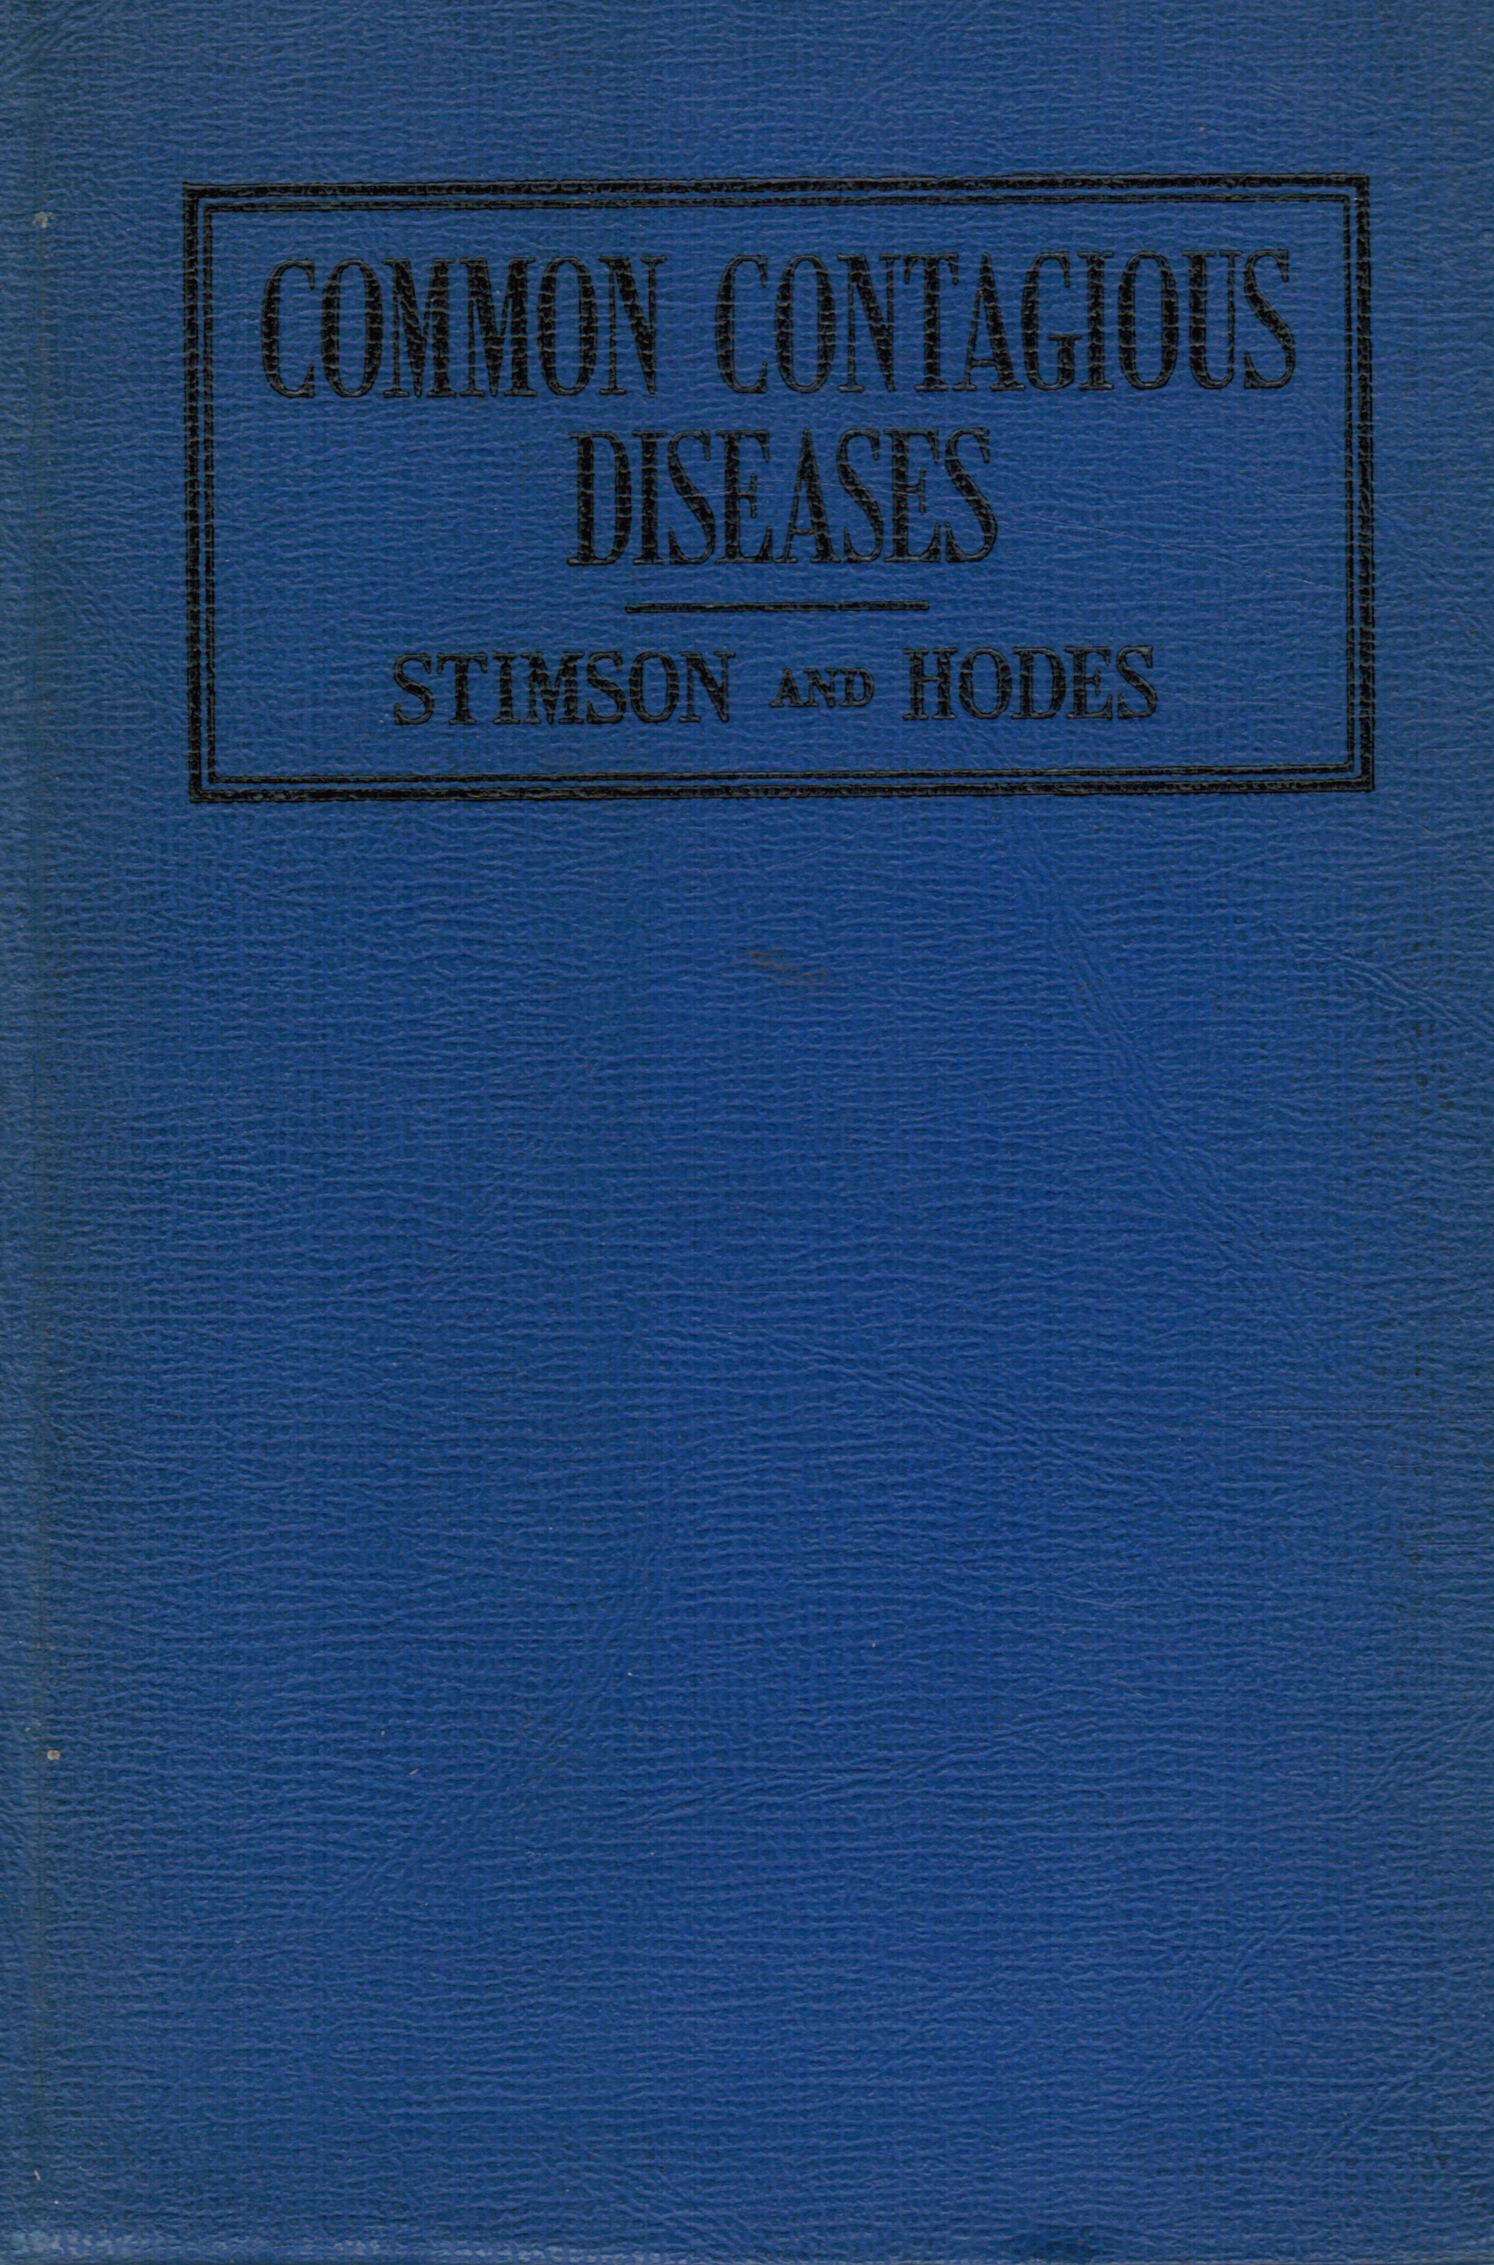 Image for A Manual of the Common Contagious Diseases